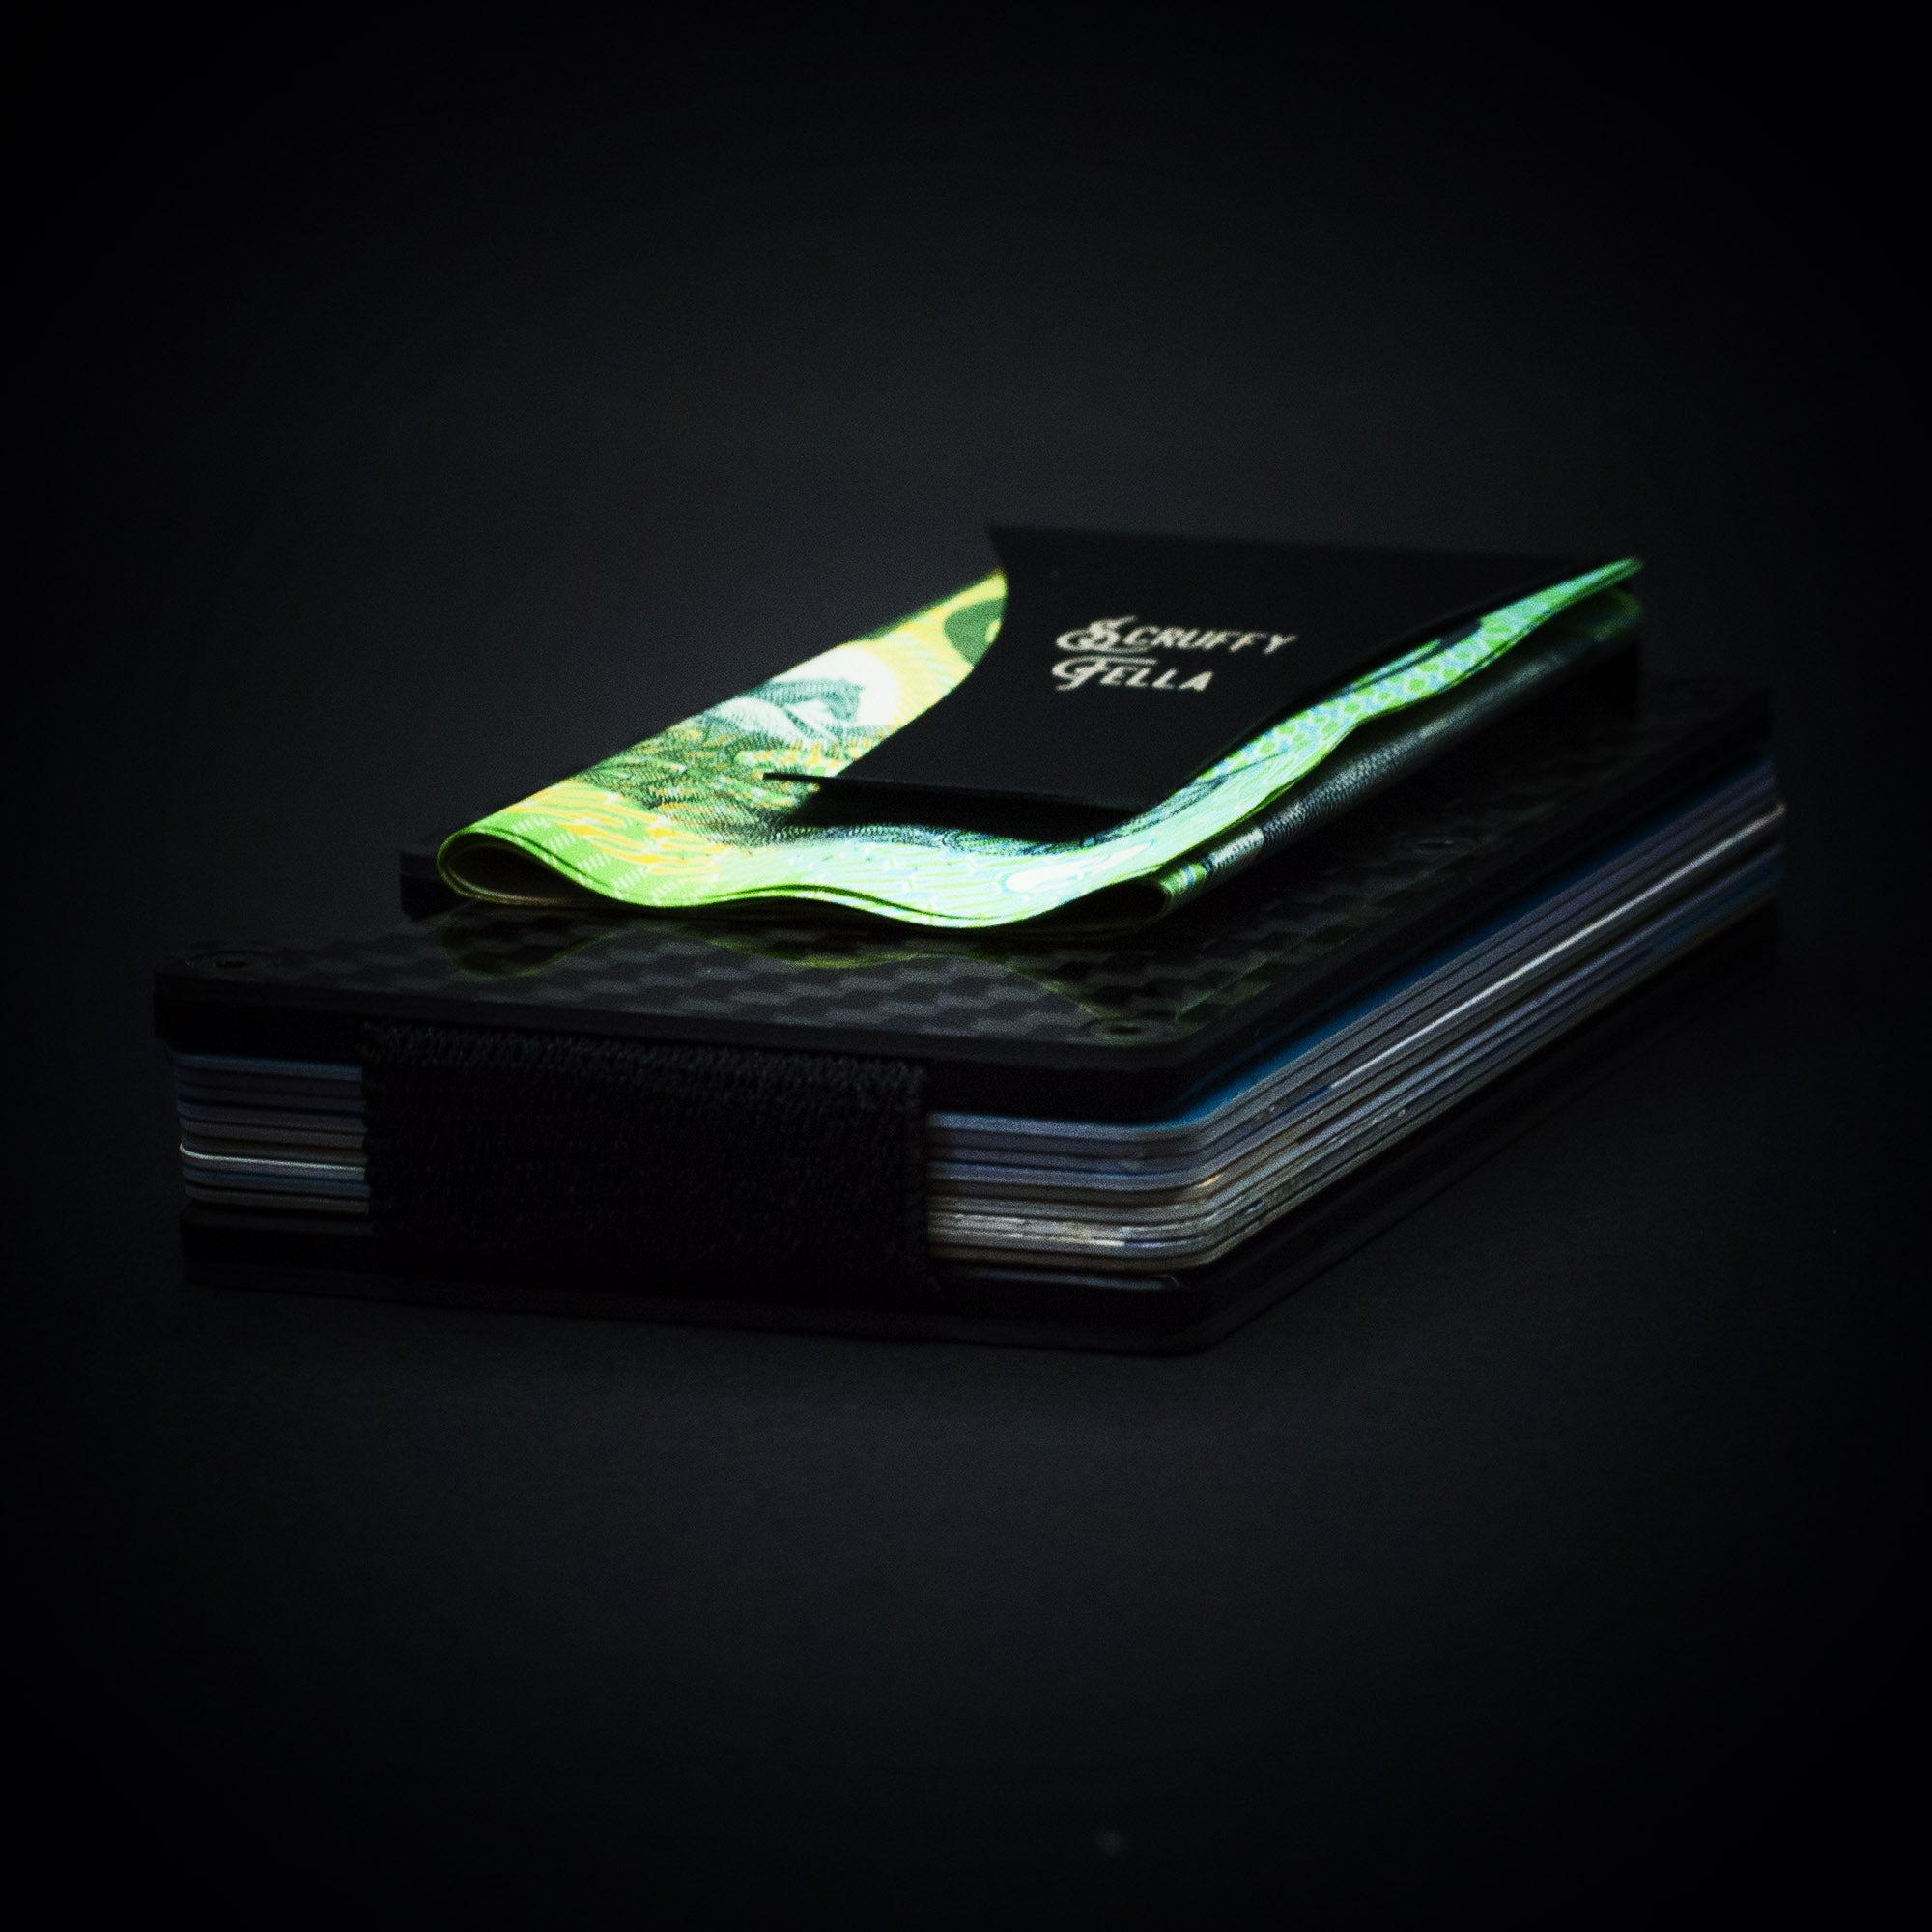 Scruffy Fella Accessories Carbon Fibre Minimalist Wallet